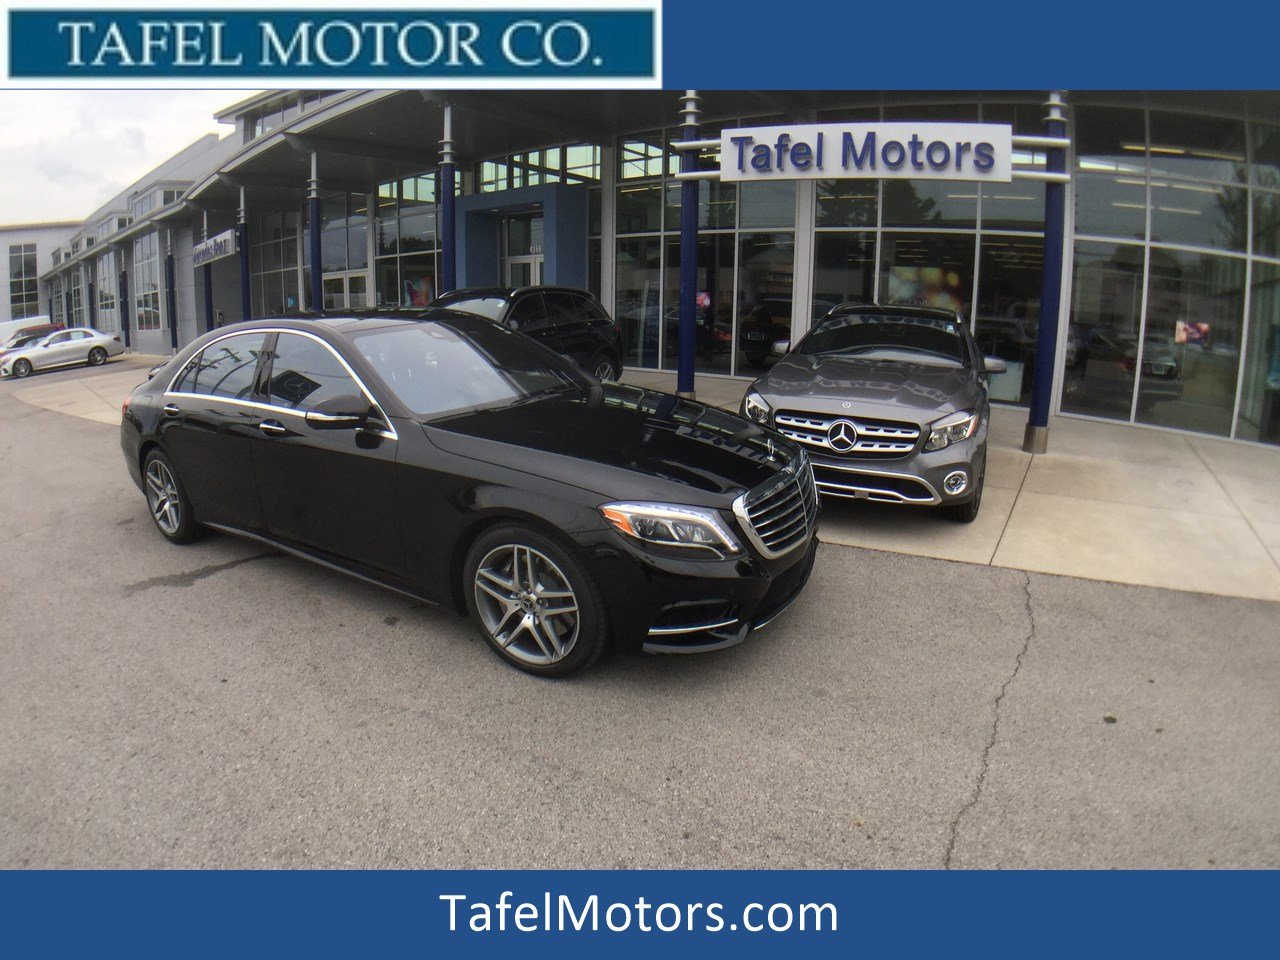 New 2017 mercedes benz s class s 550 4matic sedan 4dr car for 2017 mercedes benz s550 lease